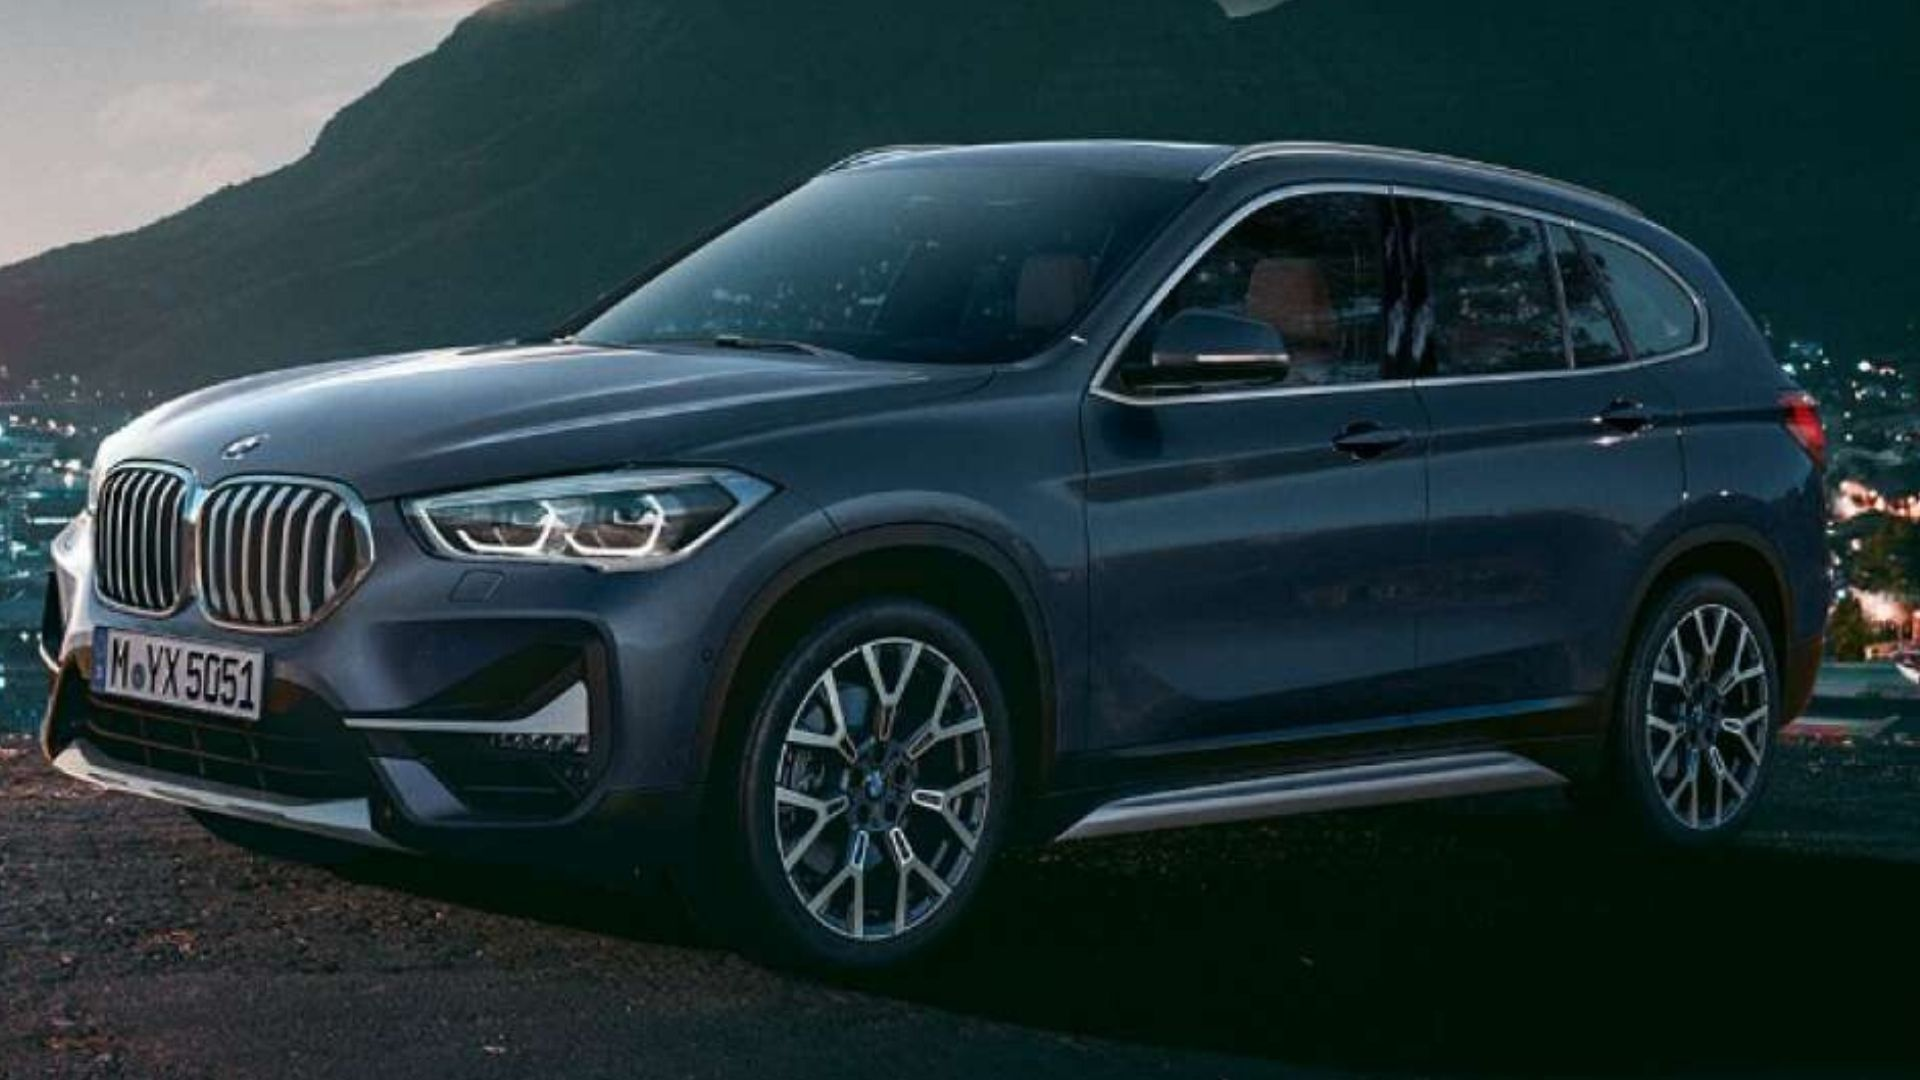 BMW has launched the new BMW X1 (BS6) in India at Rs 35